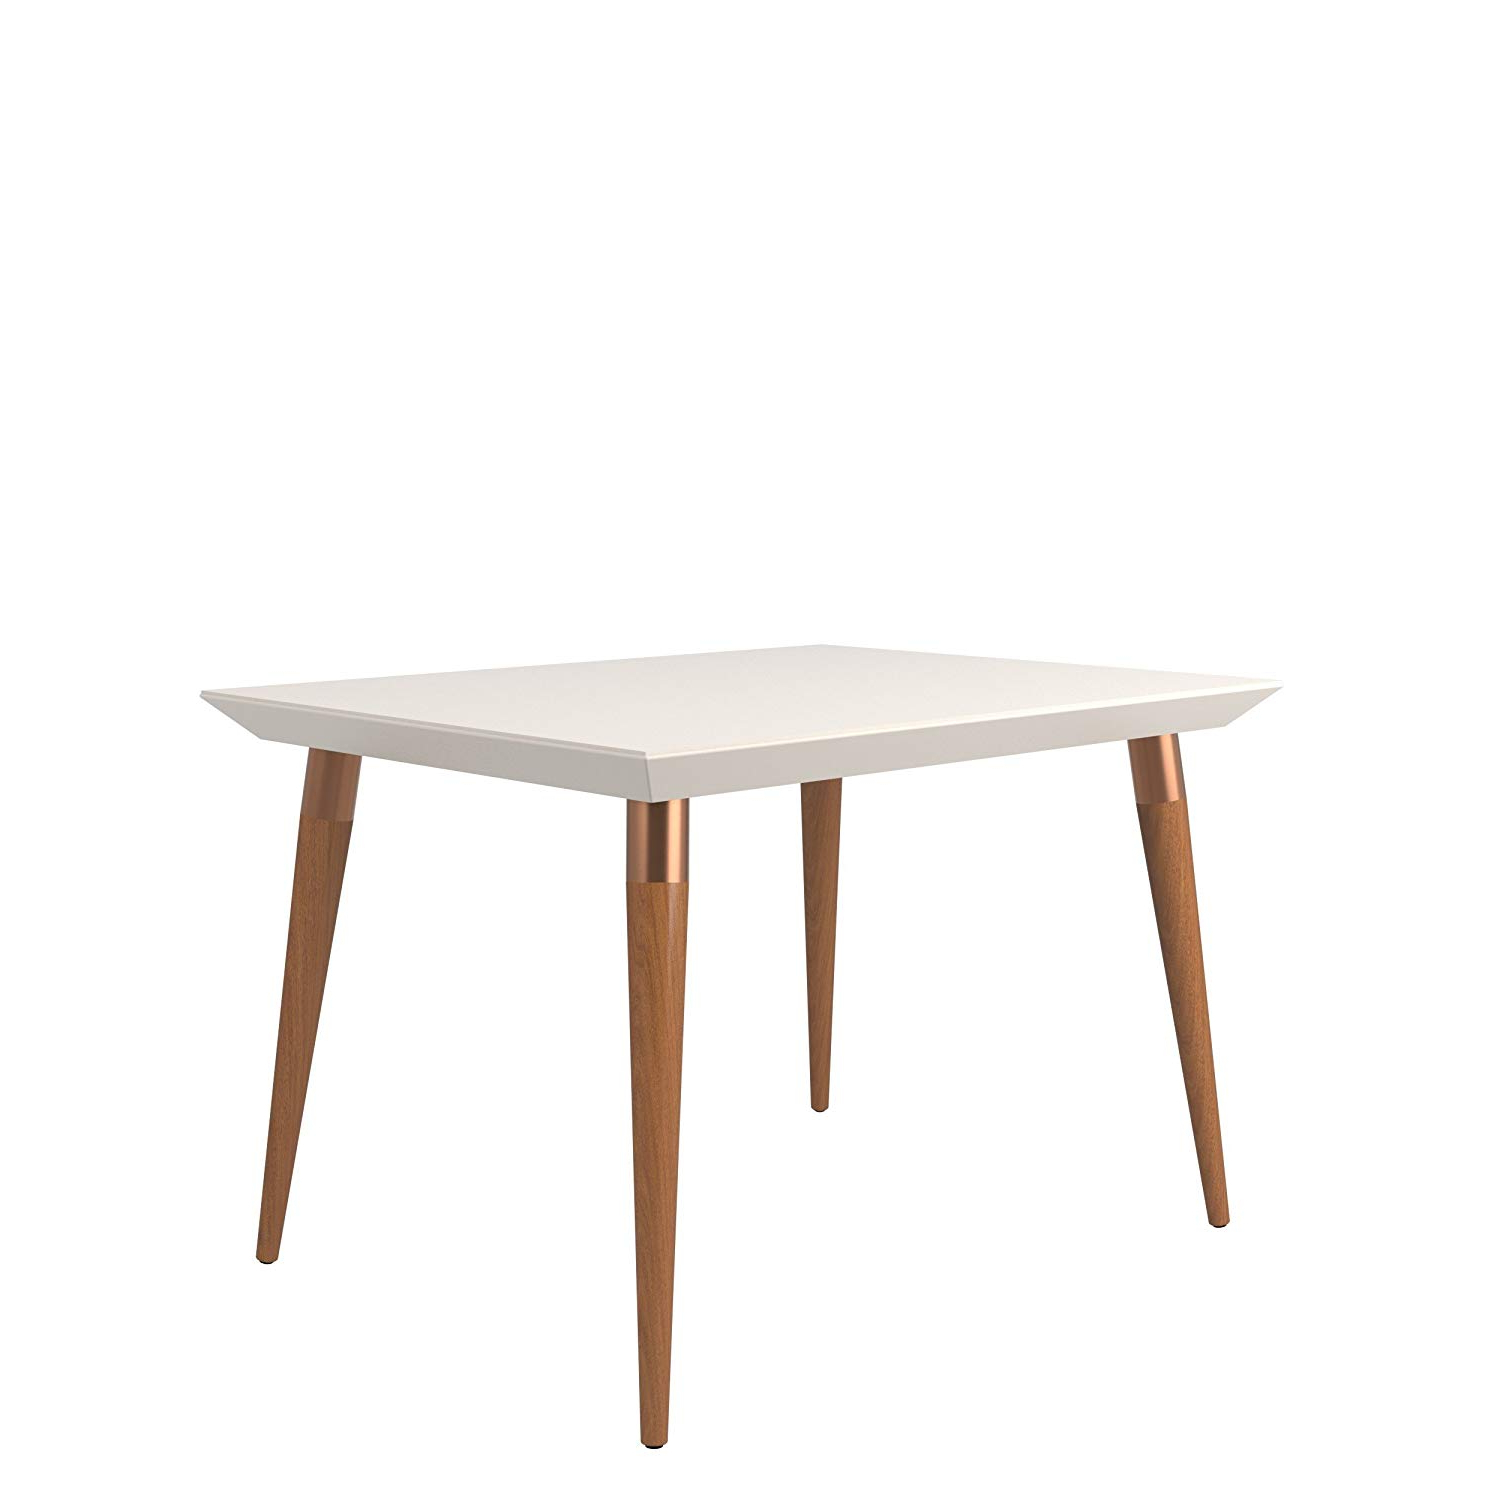 2019 Rustic Mid Century Modern 6 Seating Dining Tables In White And Natural Wood In Amazon: Manhattan Comfort Utopia Small Mid Century (View 2 of 25)